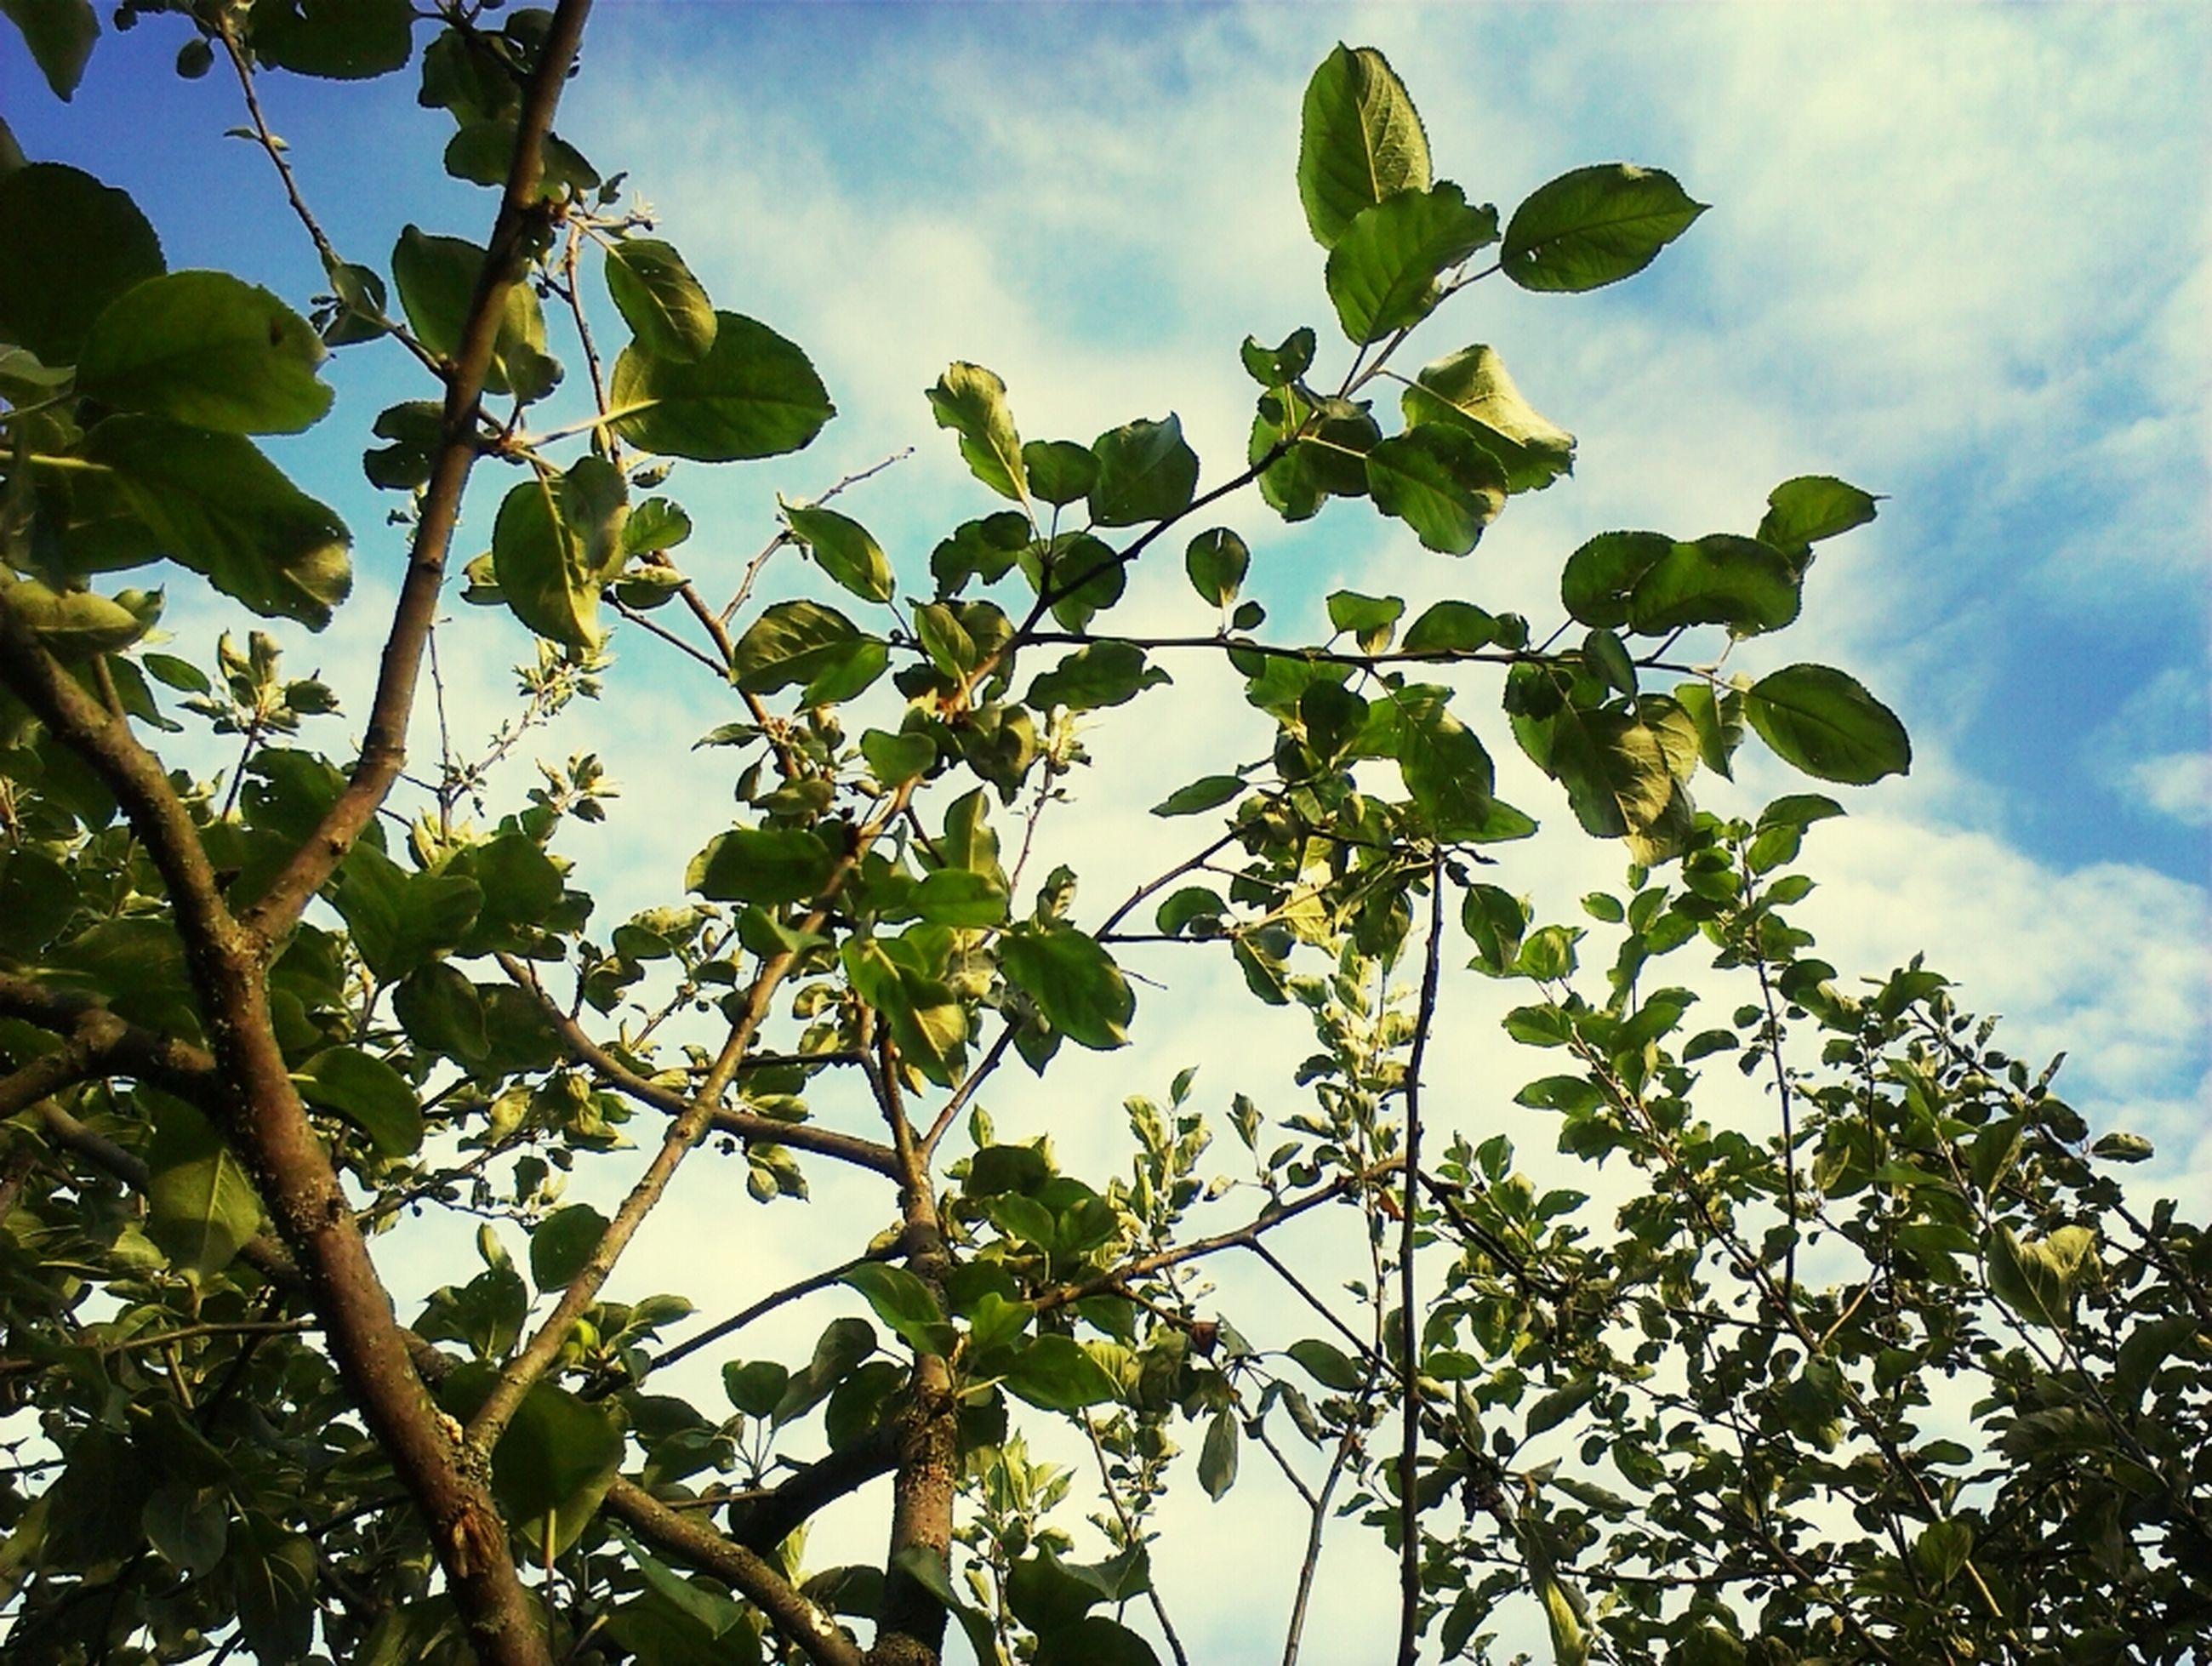 low angle view, tree, branch, sky, growth, leaf, nature, cloud - sky, green color, beauty in nature, cloud, day, outdoors, tranquility, no people, cloudy, high section, twig, sunlight, freshness